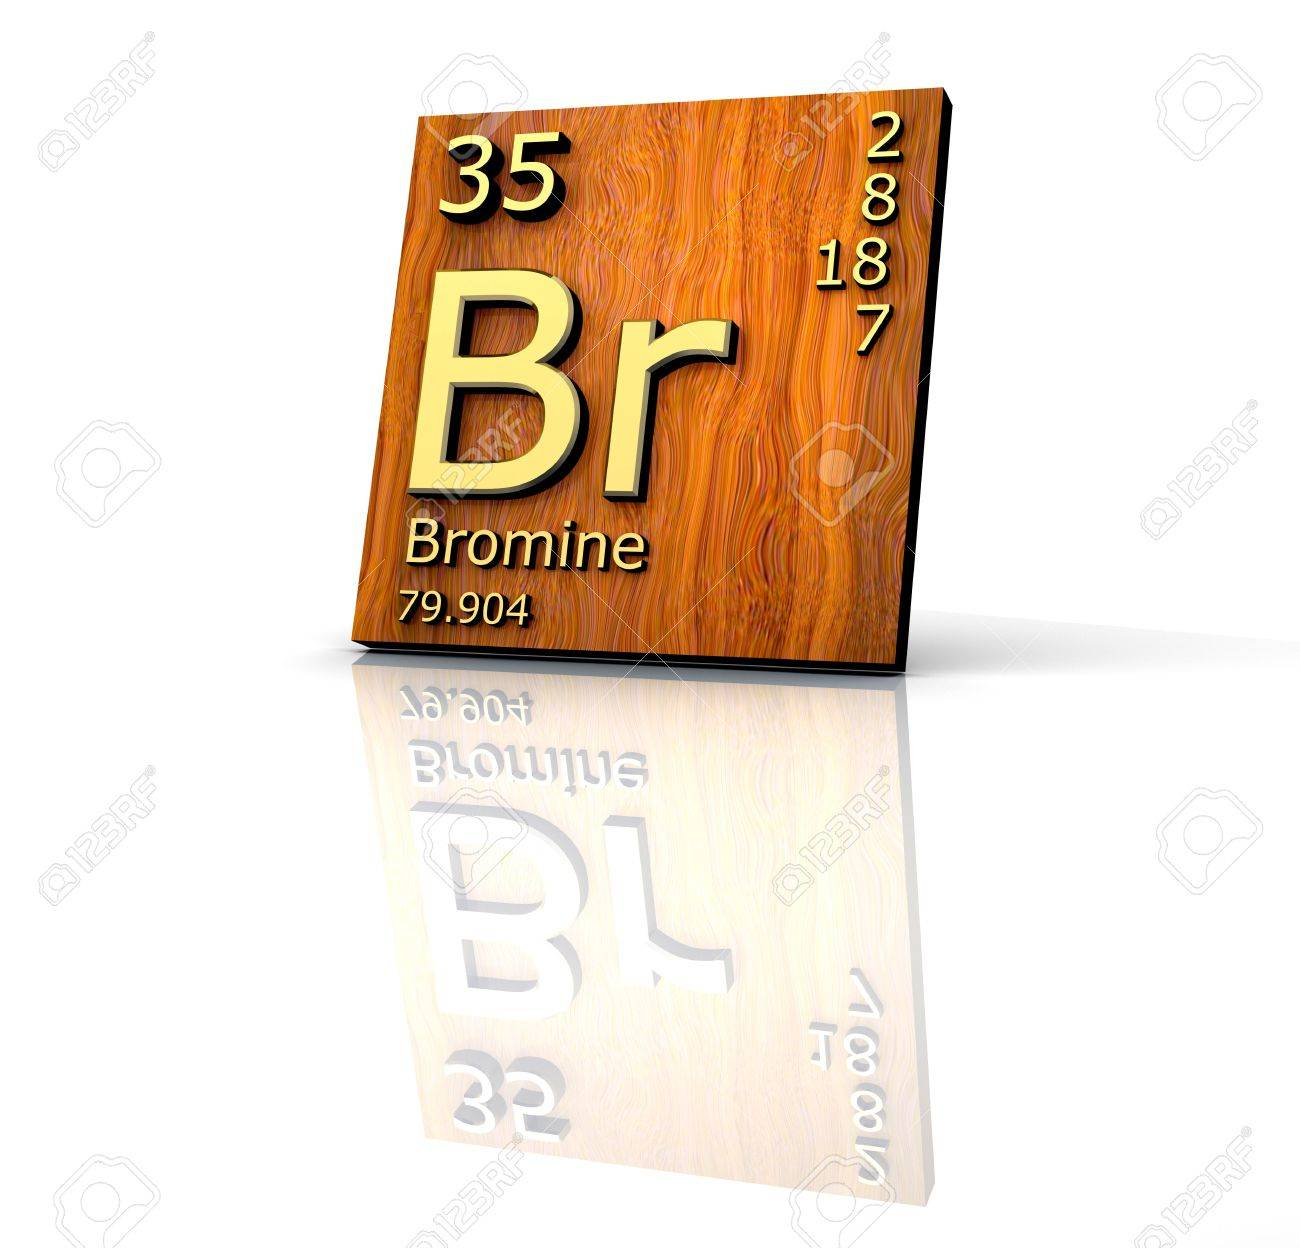 Periodic table bromine images periodic table images bromine form periodic table of elements wood board 3d made bromine form periodic table of elements gamestrikefo Image collections